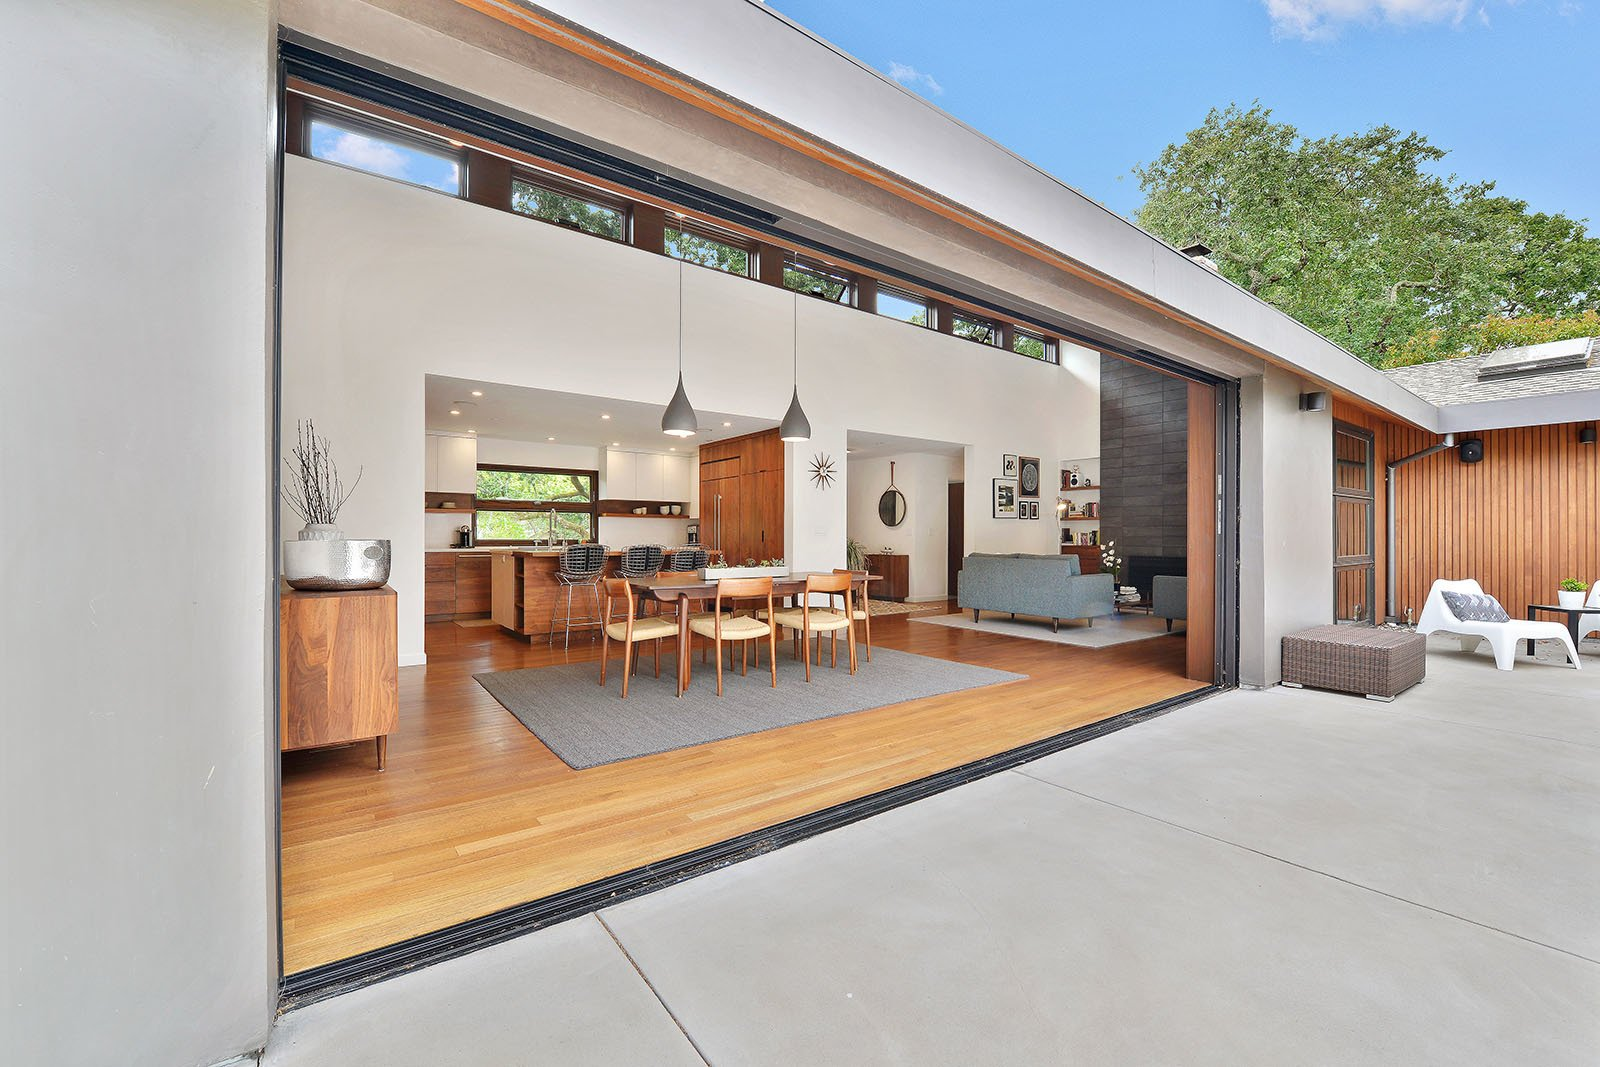 Inside & outside Tagged: Outdoor, Back Yard, Hardscapes, Large Patio, Porch, Deck, and Concrete Patio, Porch, Deck. Portola Valley by patrick perez/designpad architecture